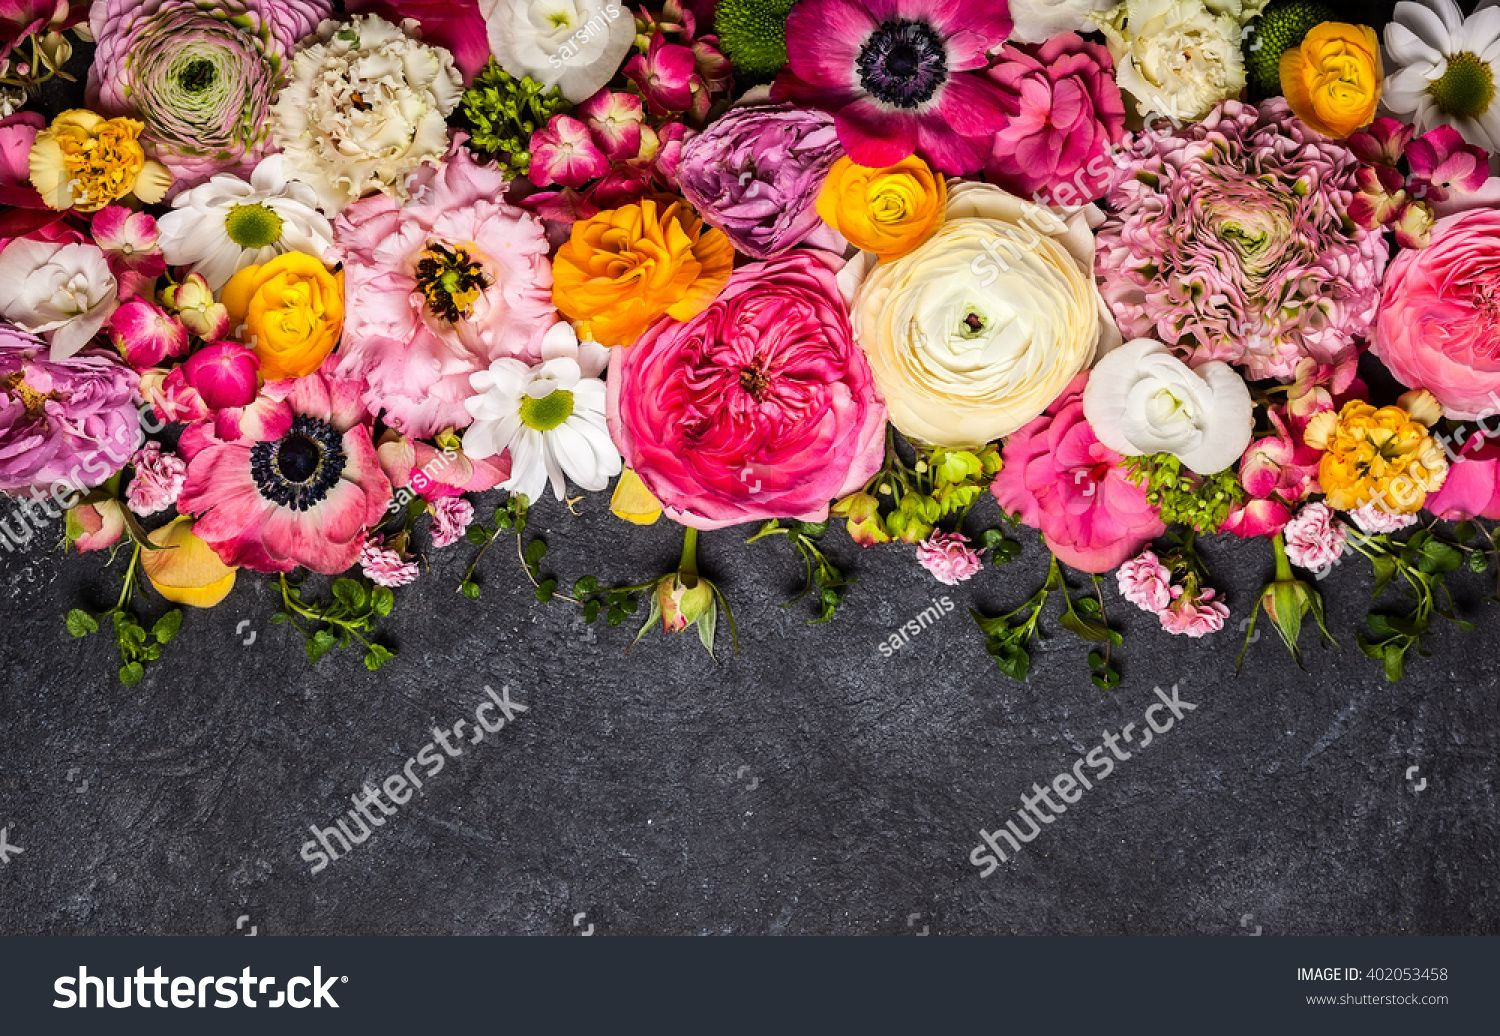 Various flowers on black background overhead view with copy space